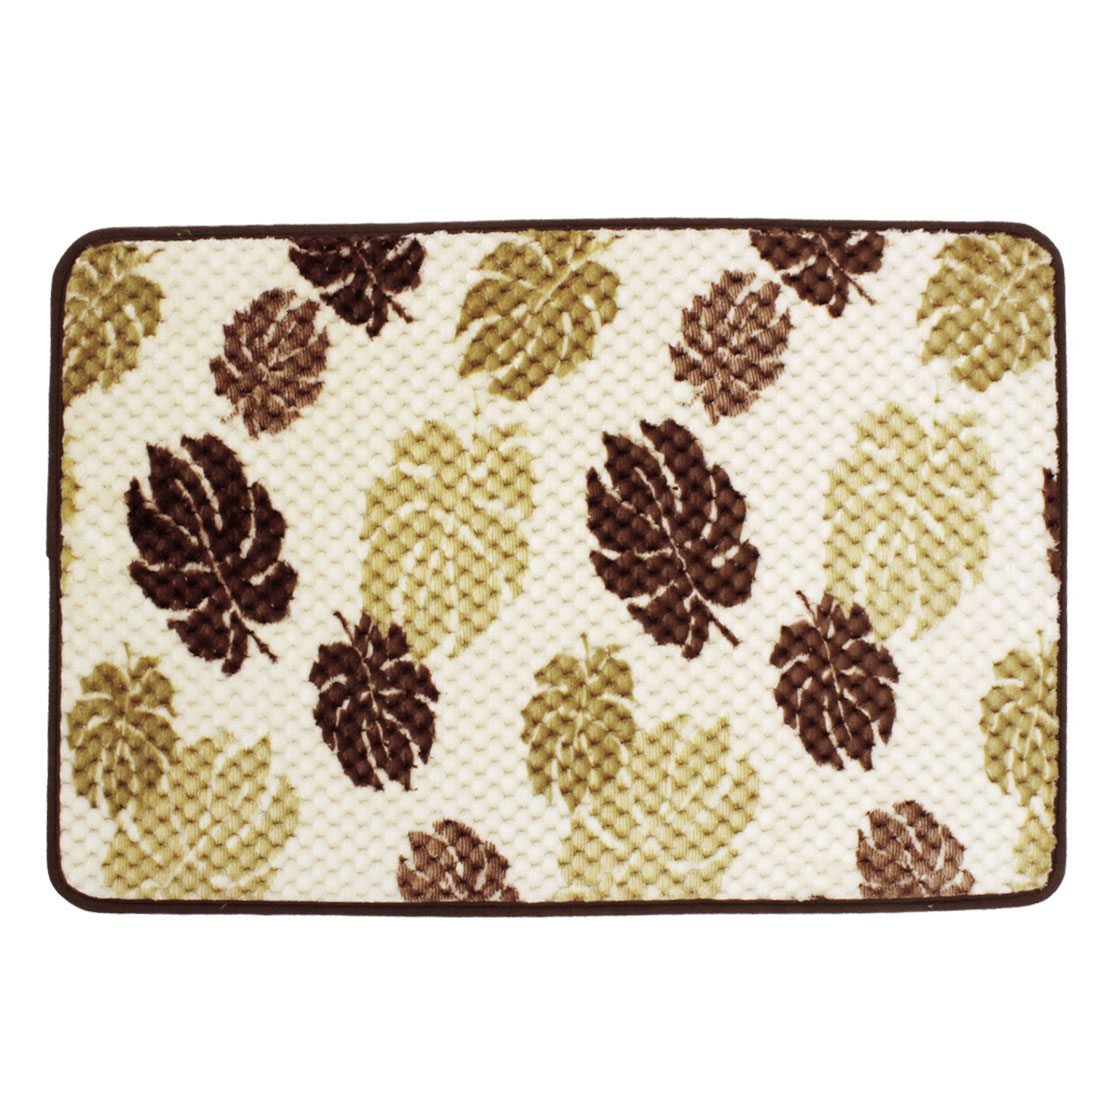 Beige Brown Leaves Patetrn Bedroom Floor Mat Area Rug Carpet 70cm x 45cm